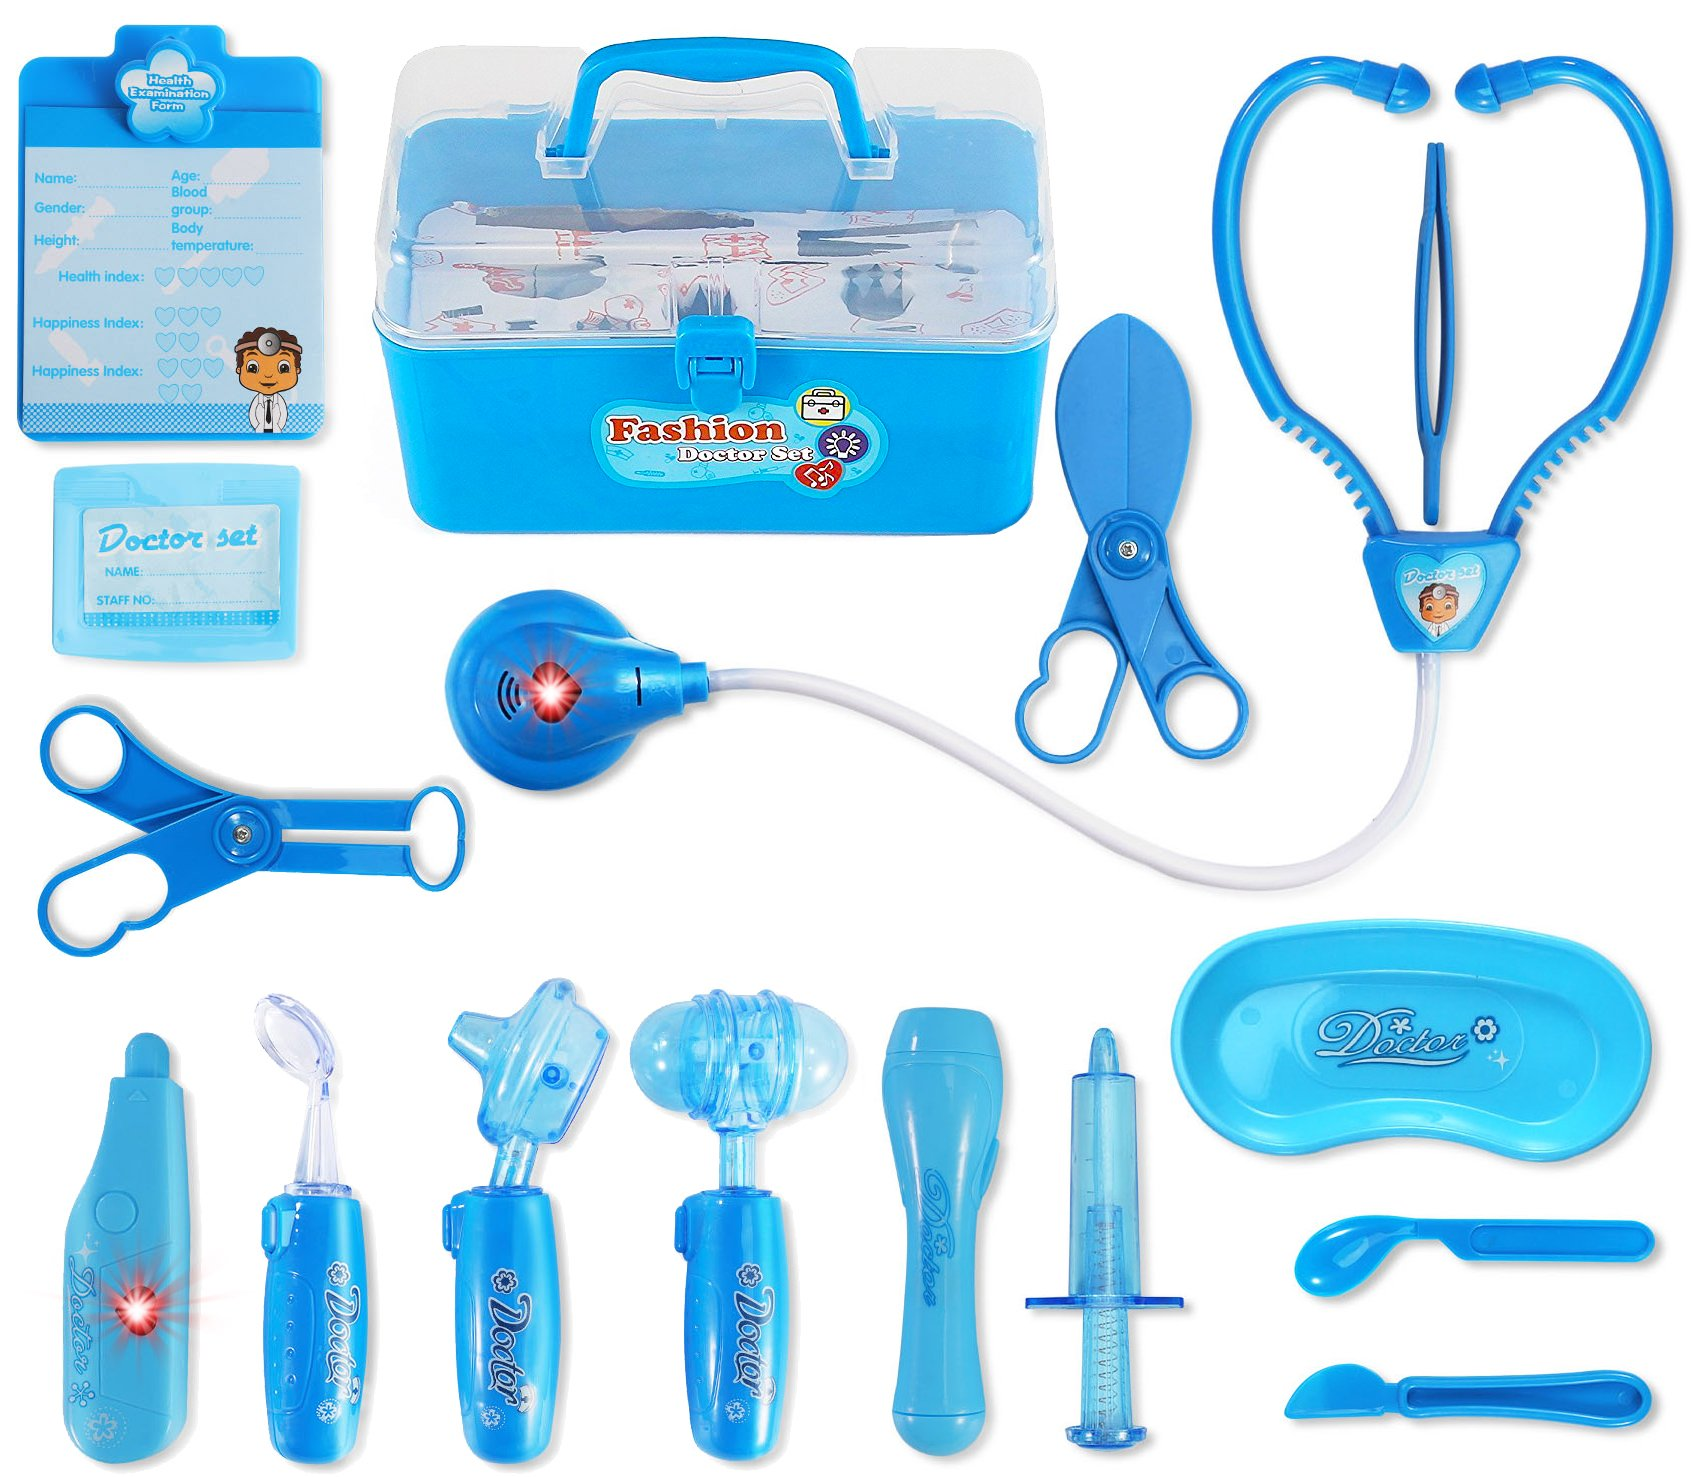 Liberty Imports Kids Doctor Playset - Pretend Play Medical Tools Box Kit for Kids - Educational Toy Gift Set for 3, 4, 5, 6 Year Old Boys, Girls (Blue) by Liberty Imports